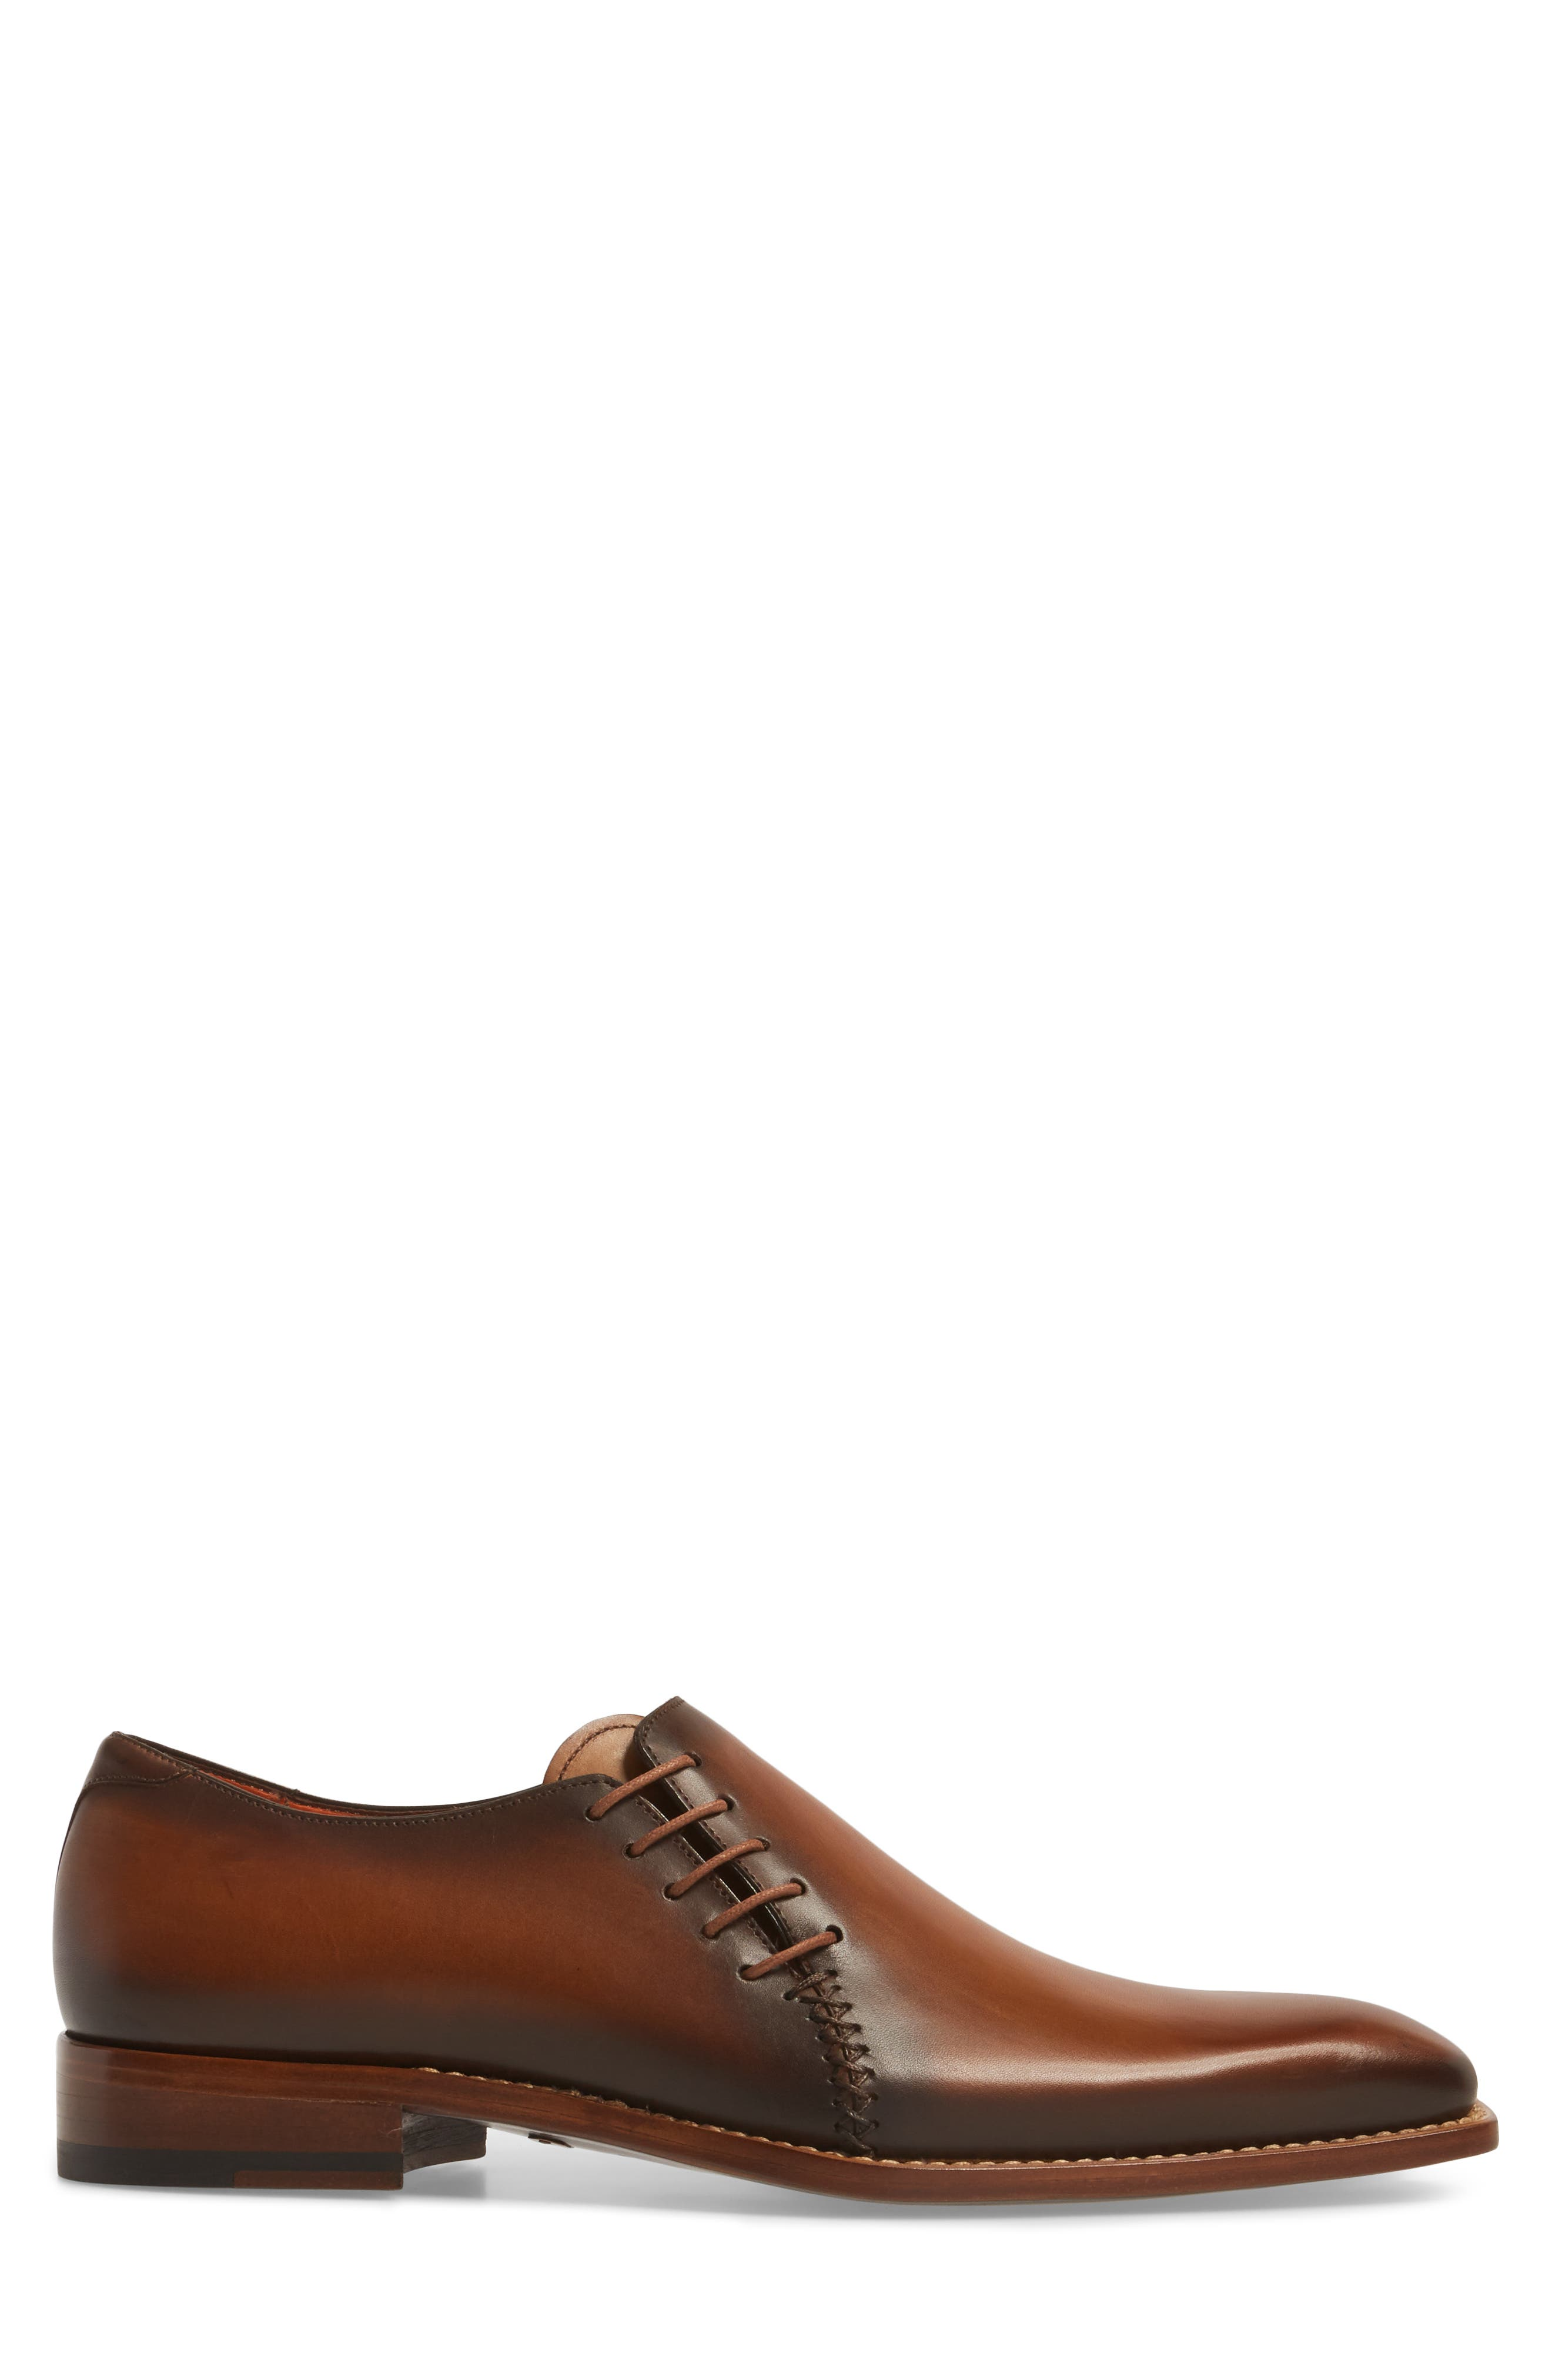 Master Wholecut Oxford,                             Alternate thumbnail 3, color,                             Honey Leather